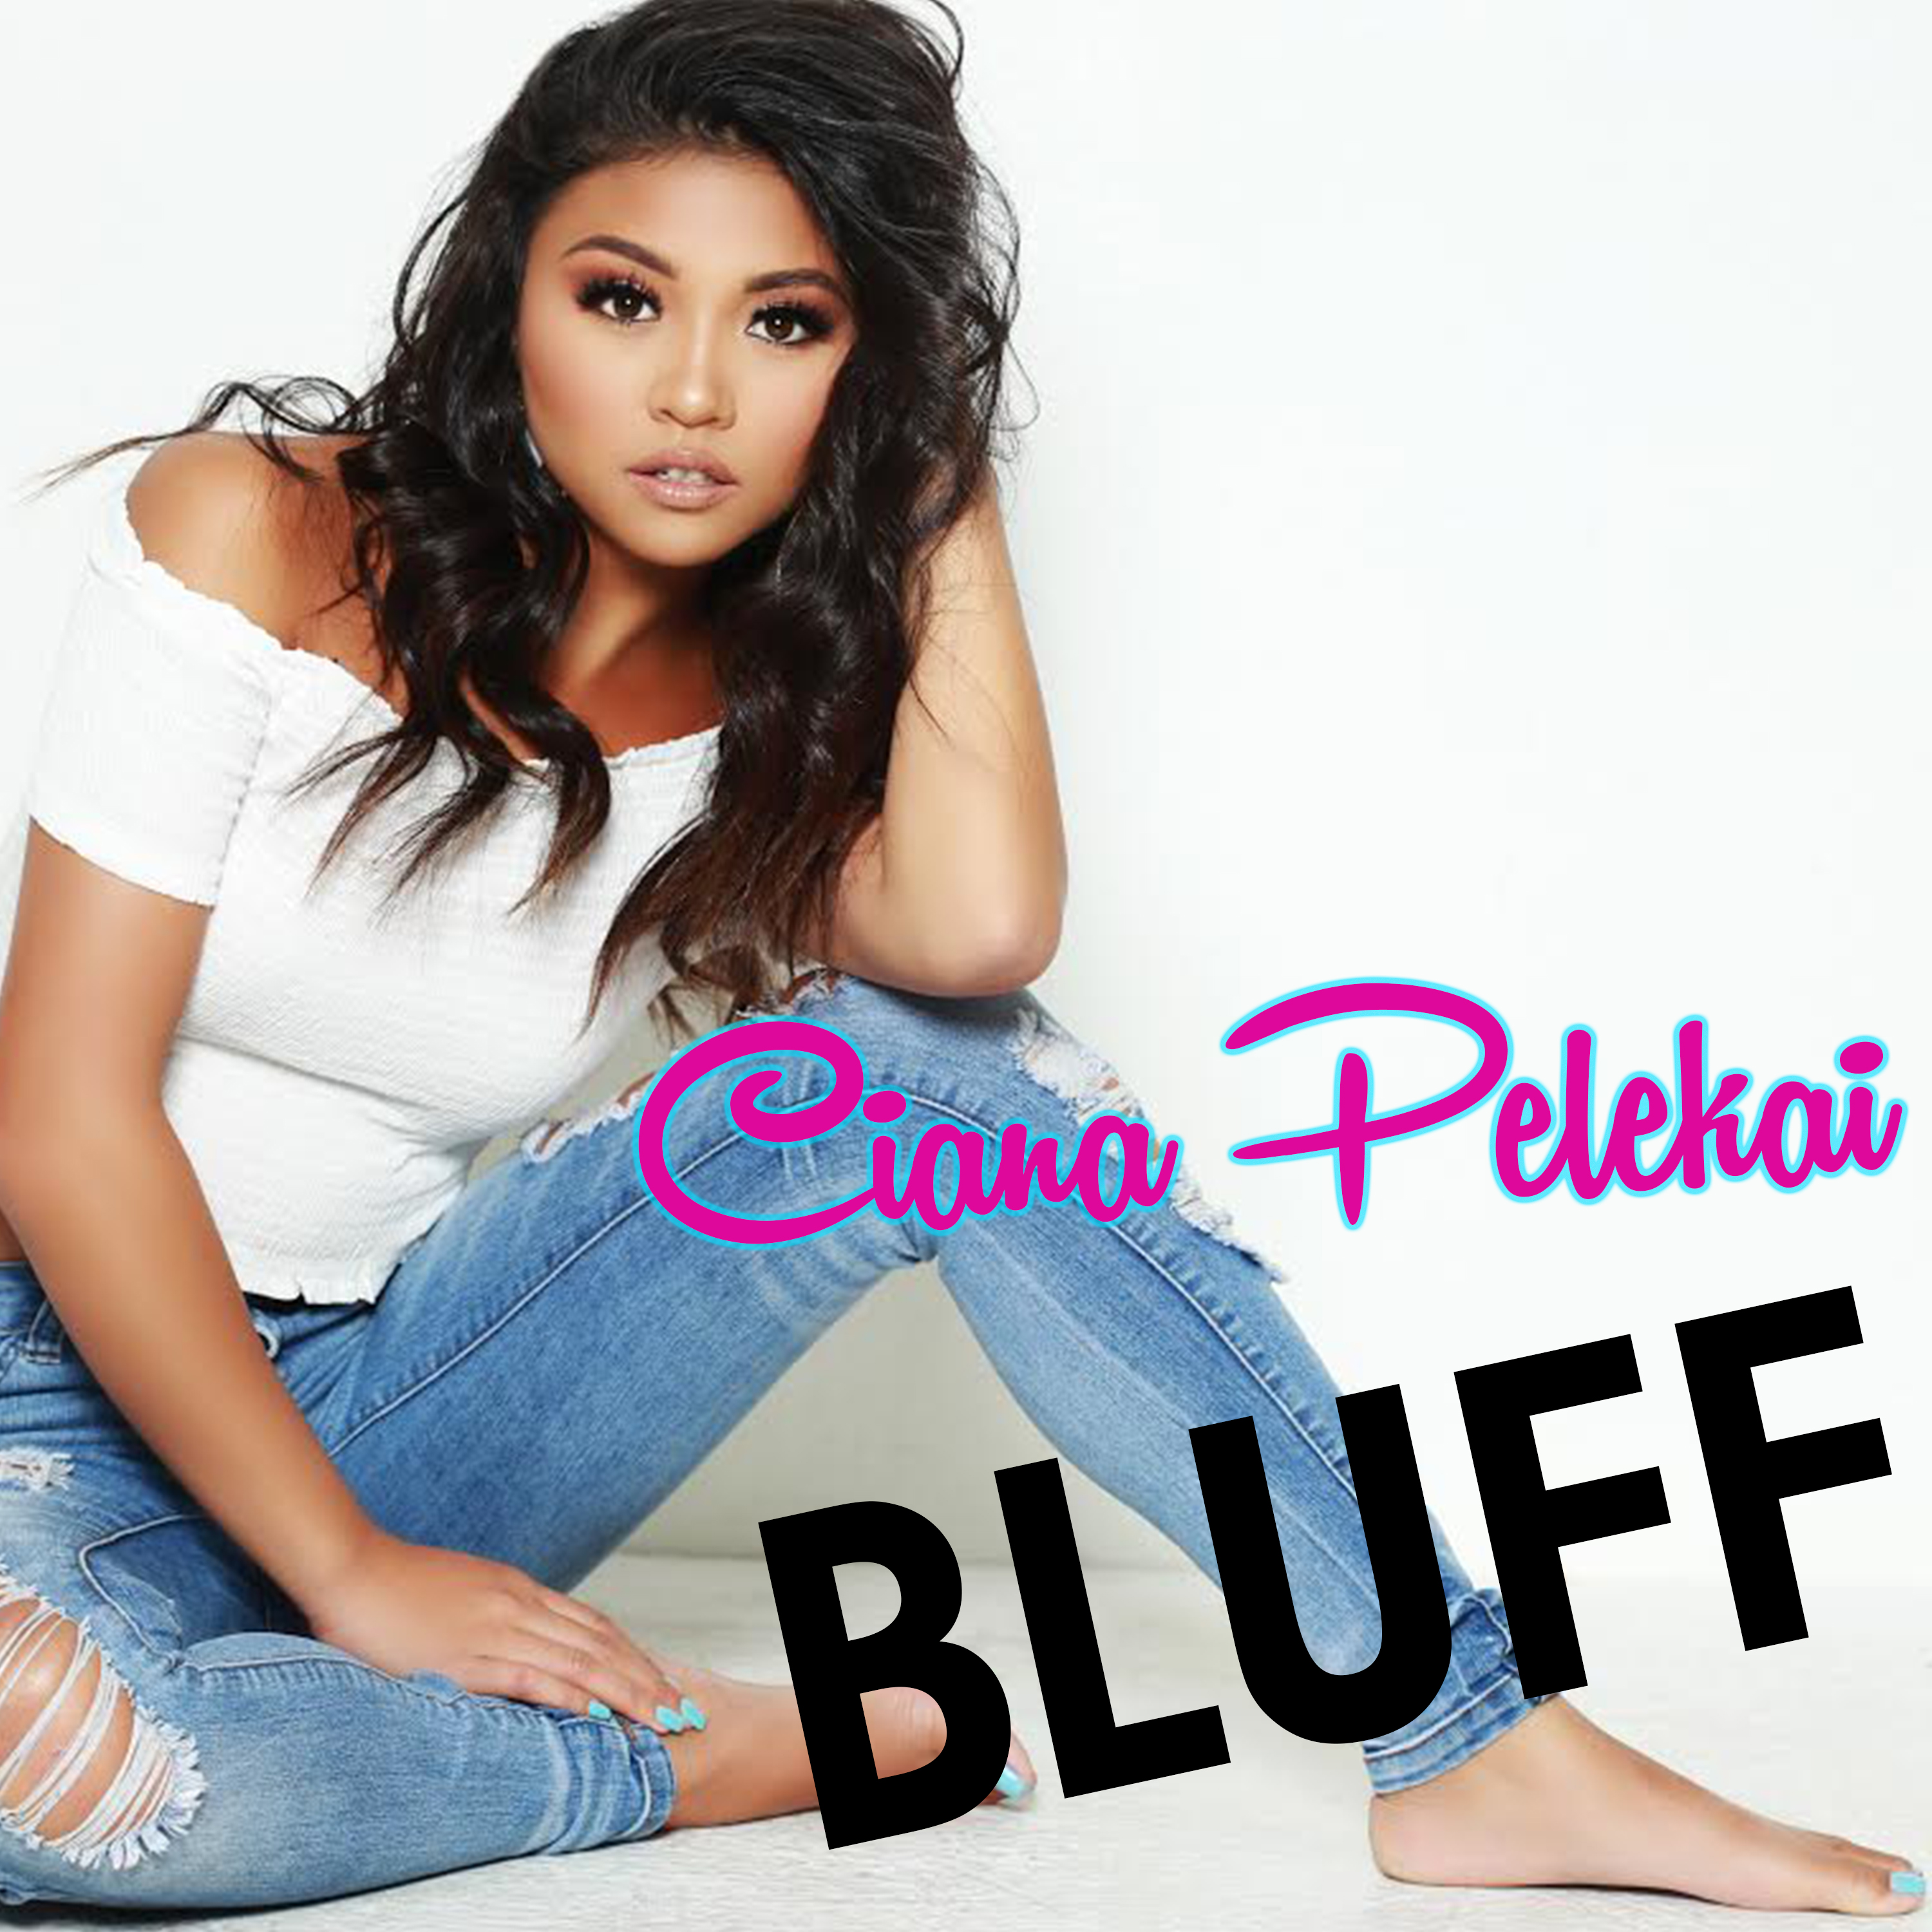 New Video: Ciana Pelekai – Bluff | @cianapelekai10